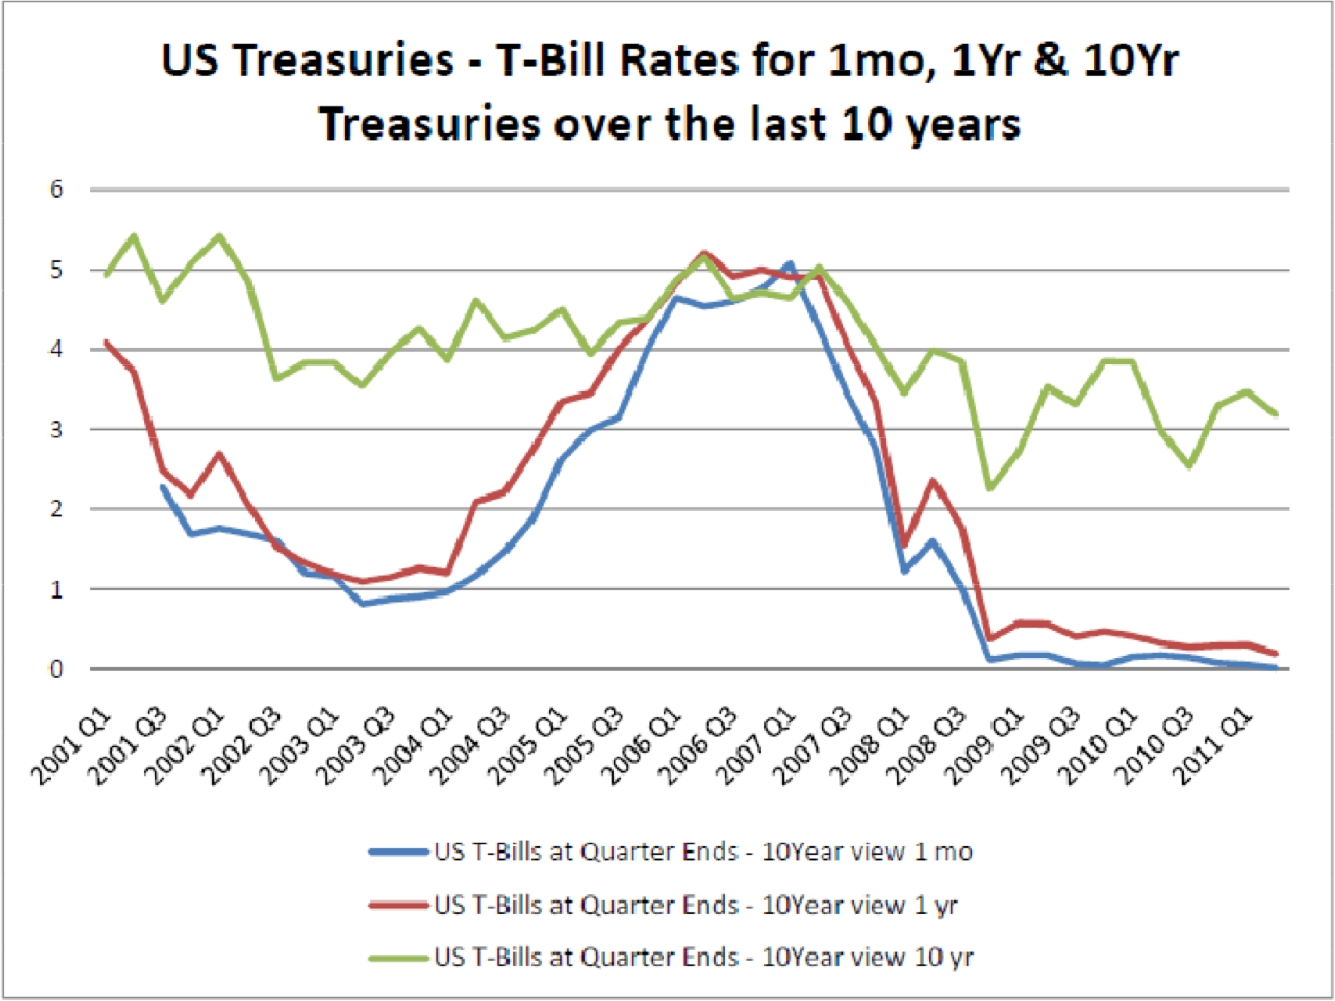 10 Year Treasury Rate Historical Data